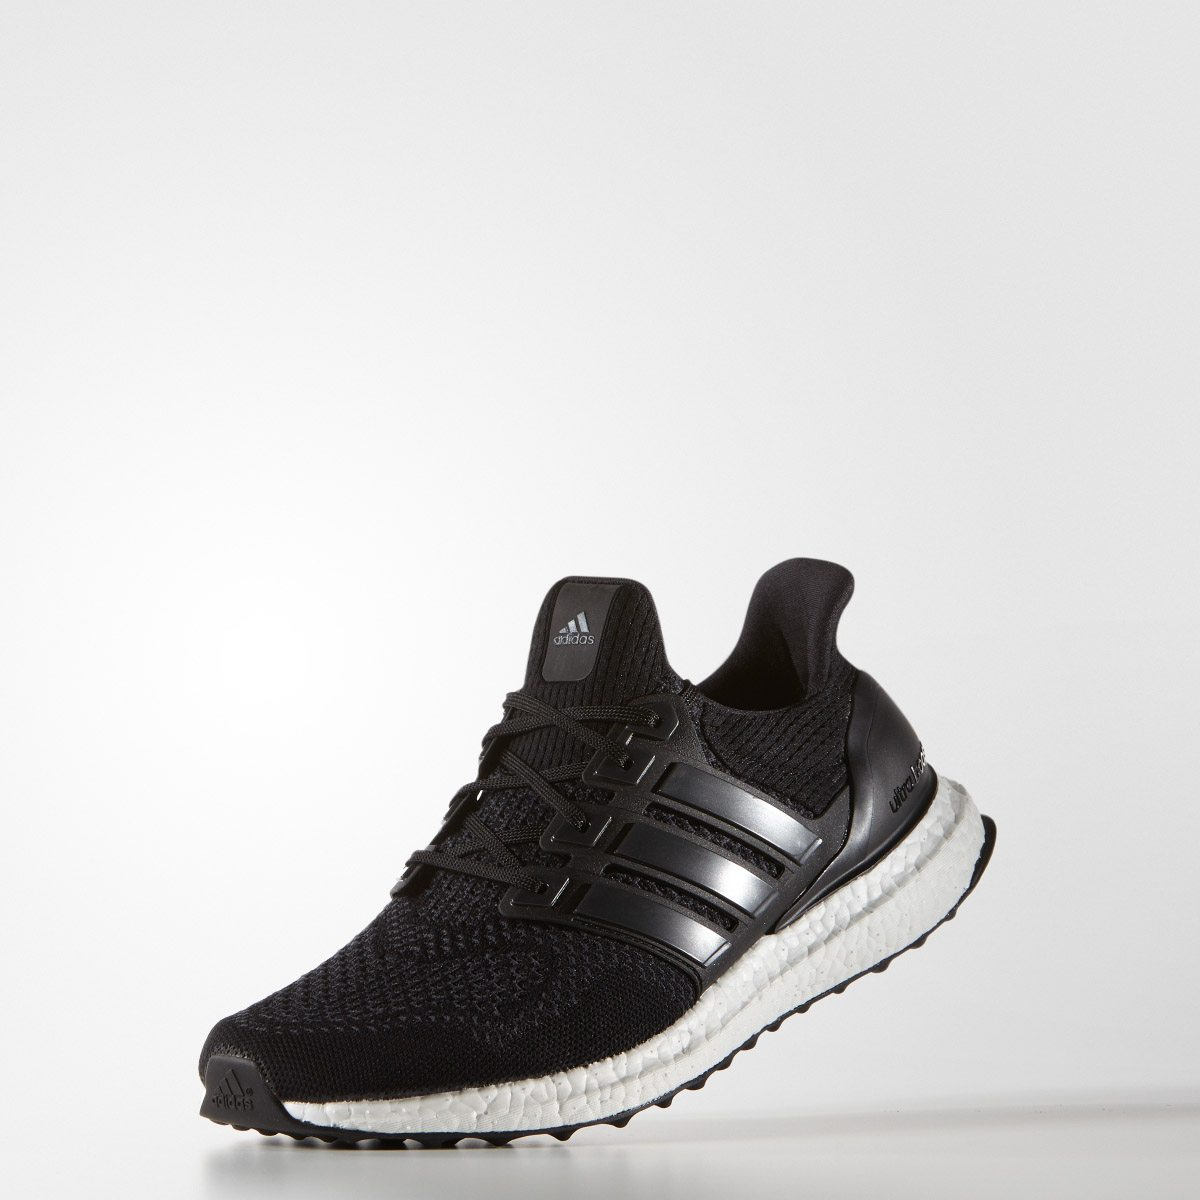 adidas Ultra BOOST Black White 2